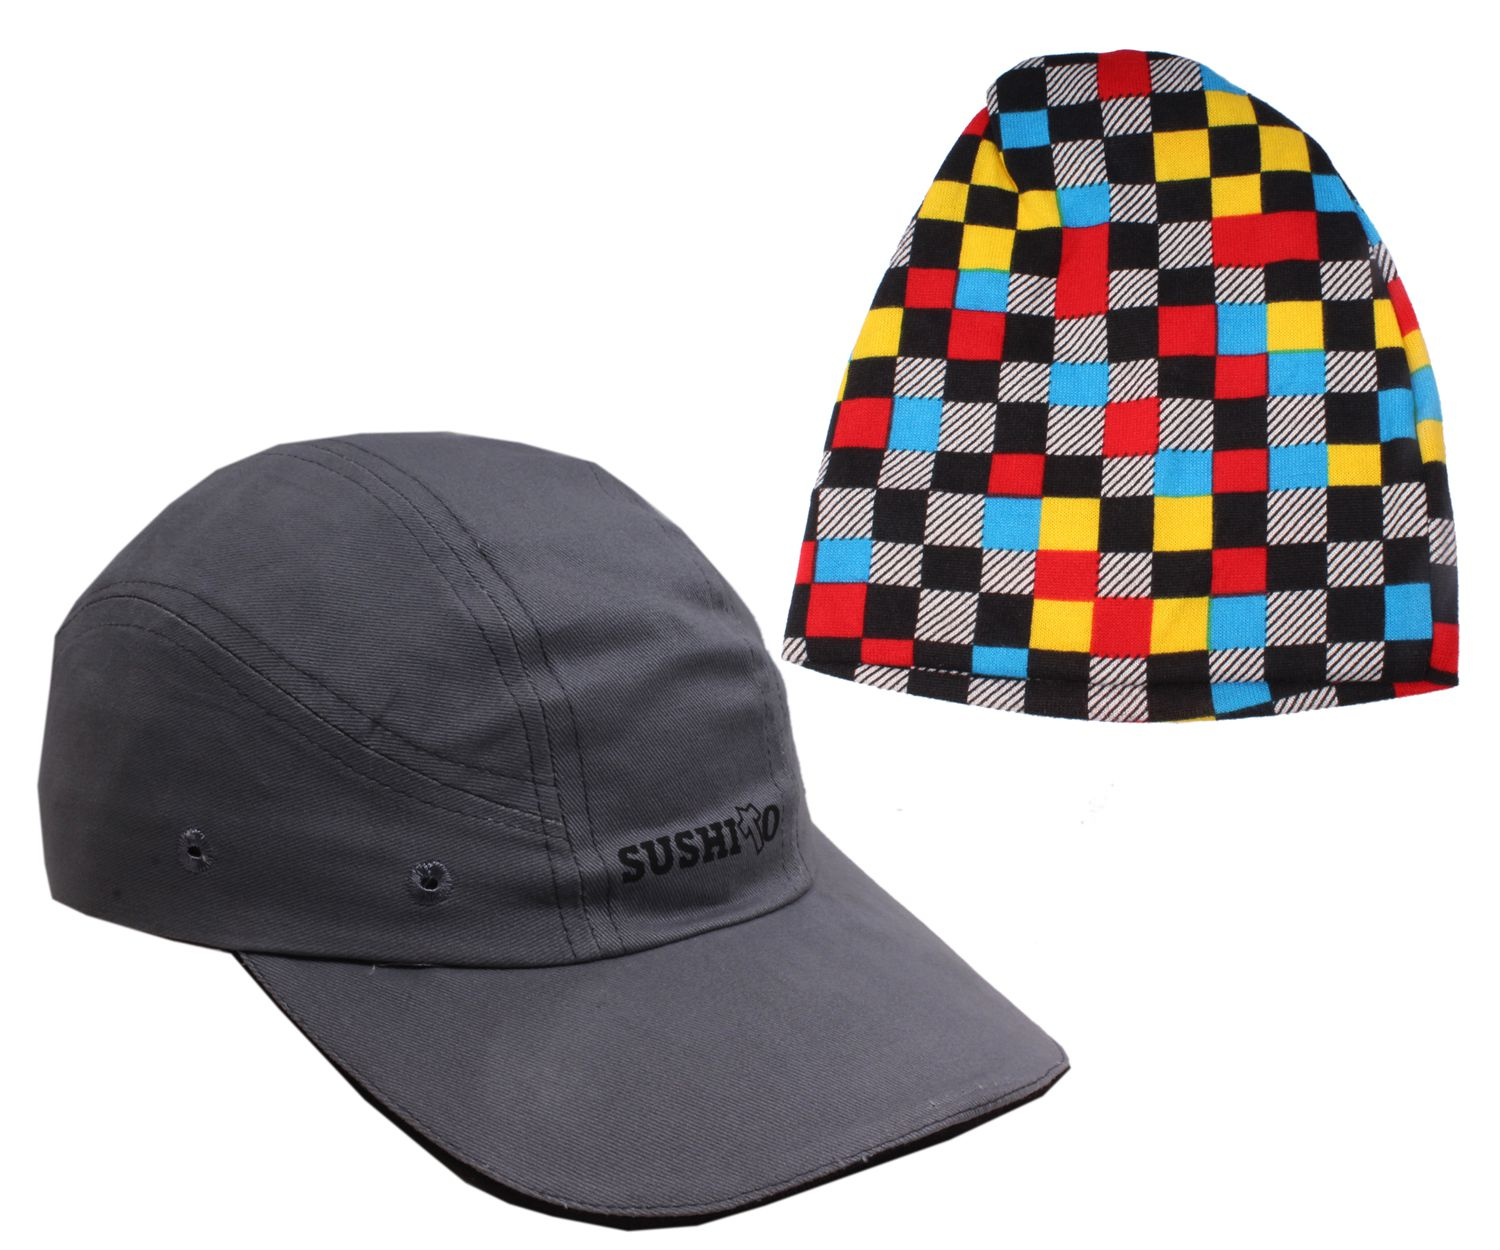 Jstarmart Multicolour Fancy Cap - Set Of Two - Buy Online   Rs ... ccc195f1dbf